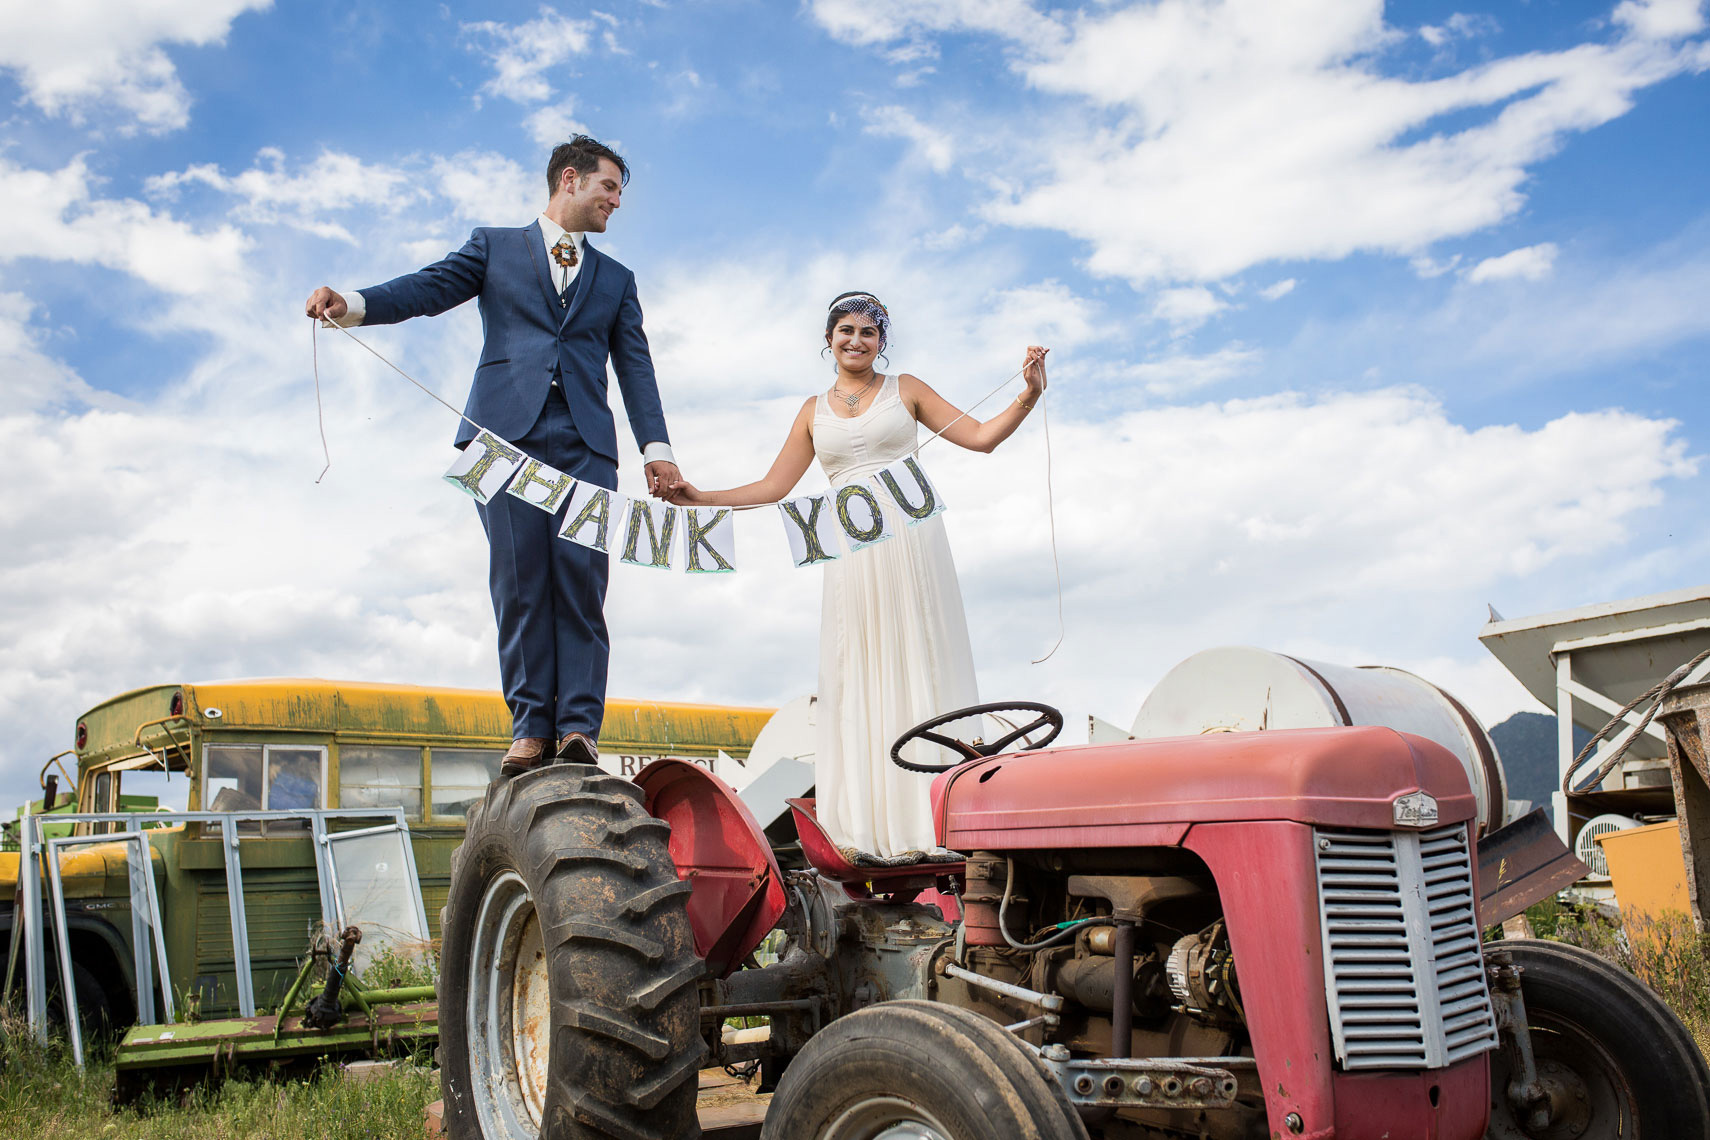 Rustic Taos Wedding, couple holds Thank You signs standing on tractor